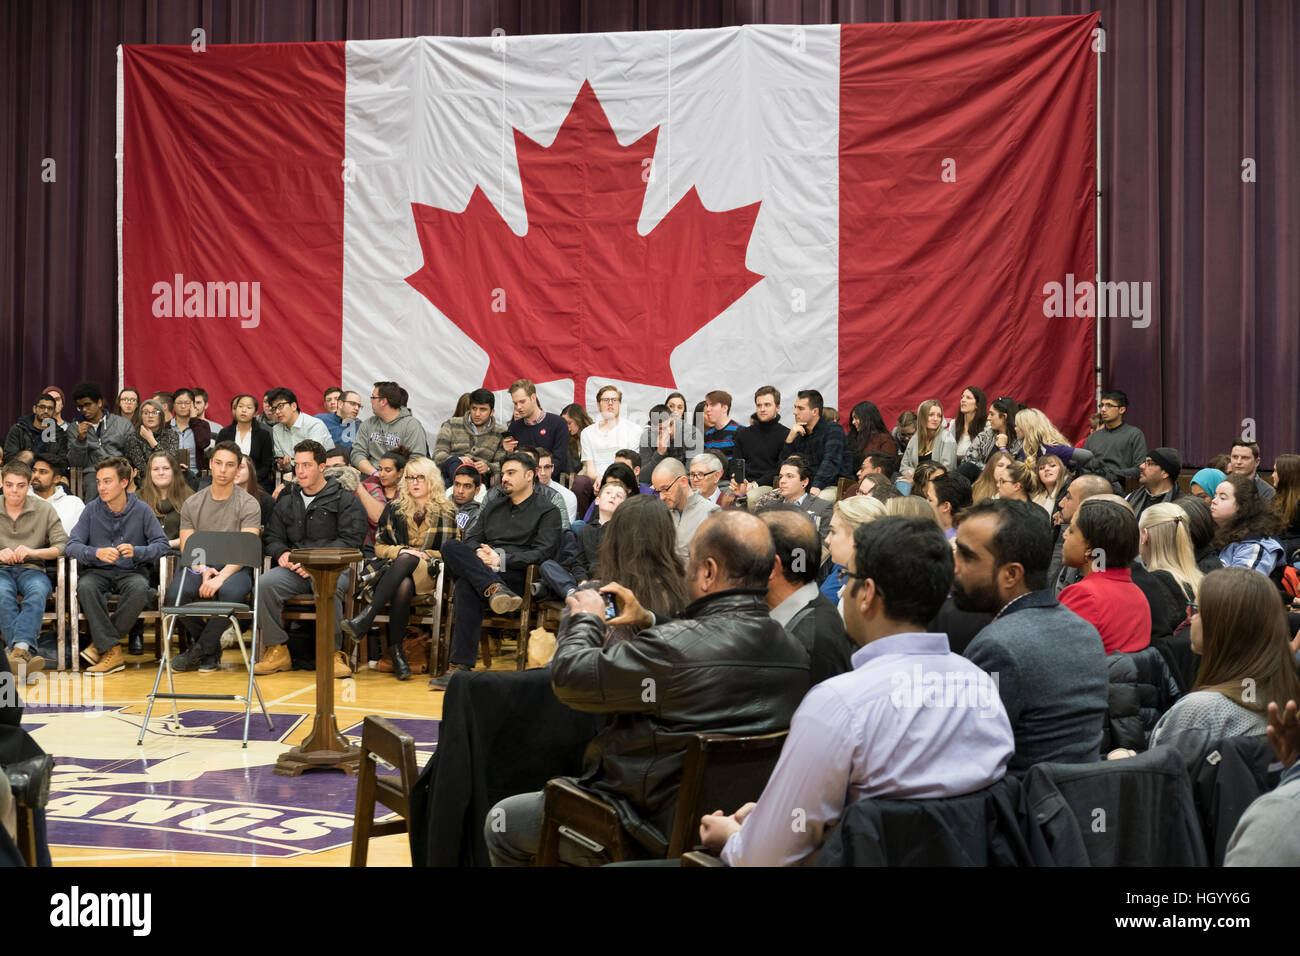 London, Ontario, Canada, 13th January, 2017. Members of the audience wait for the Prime Minister of Canada, before - Stock Image